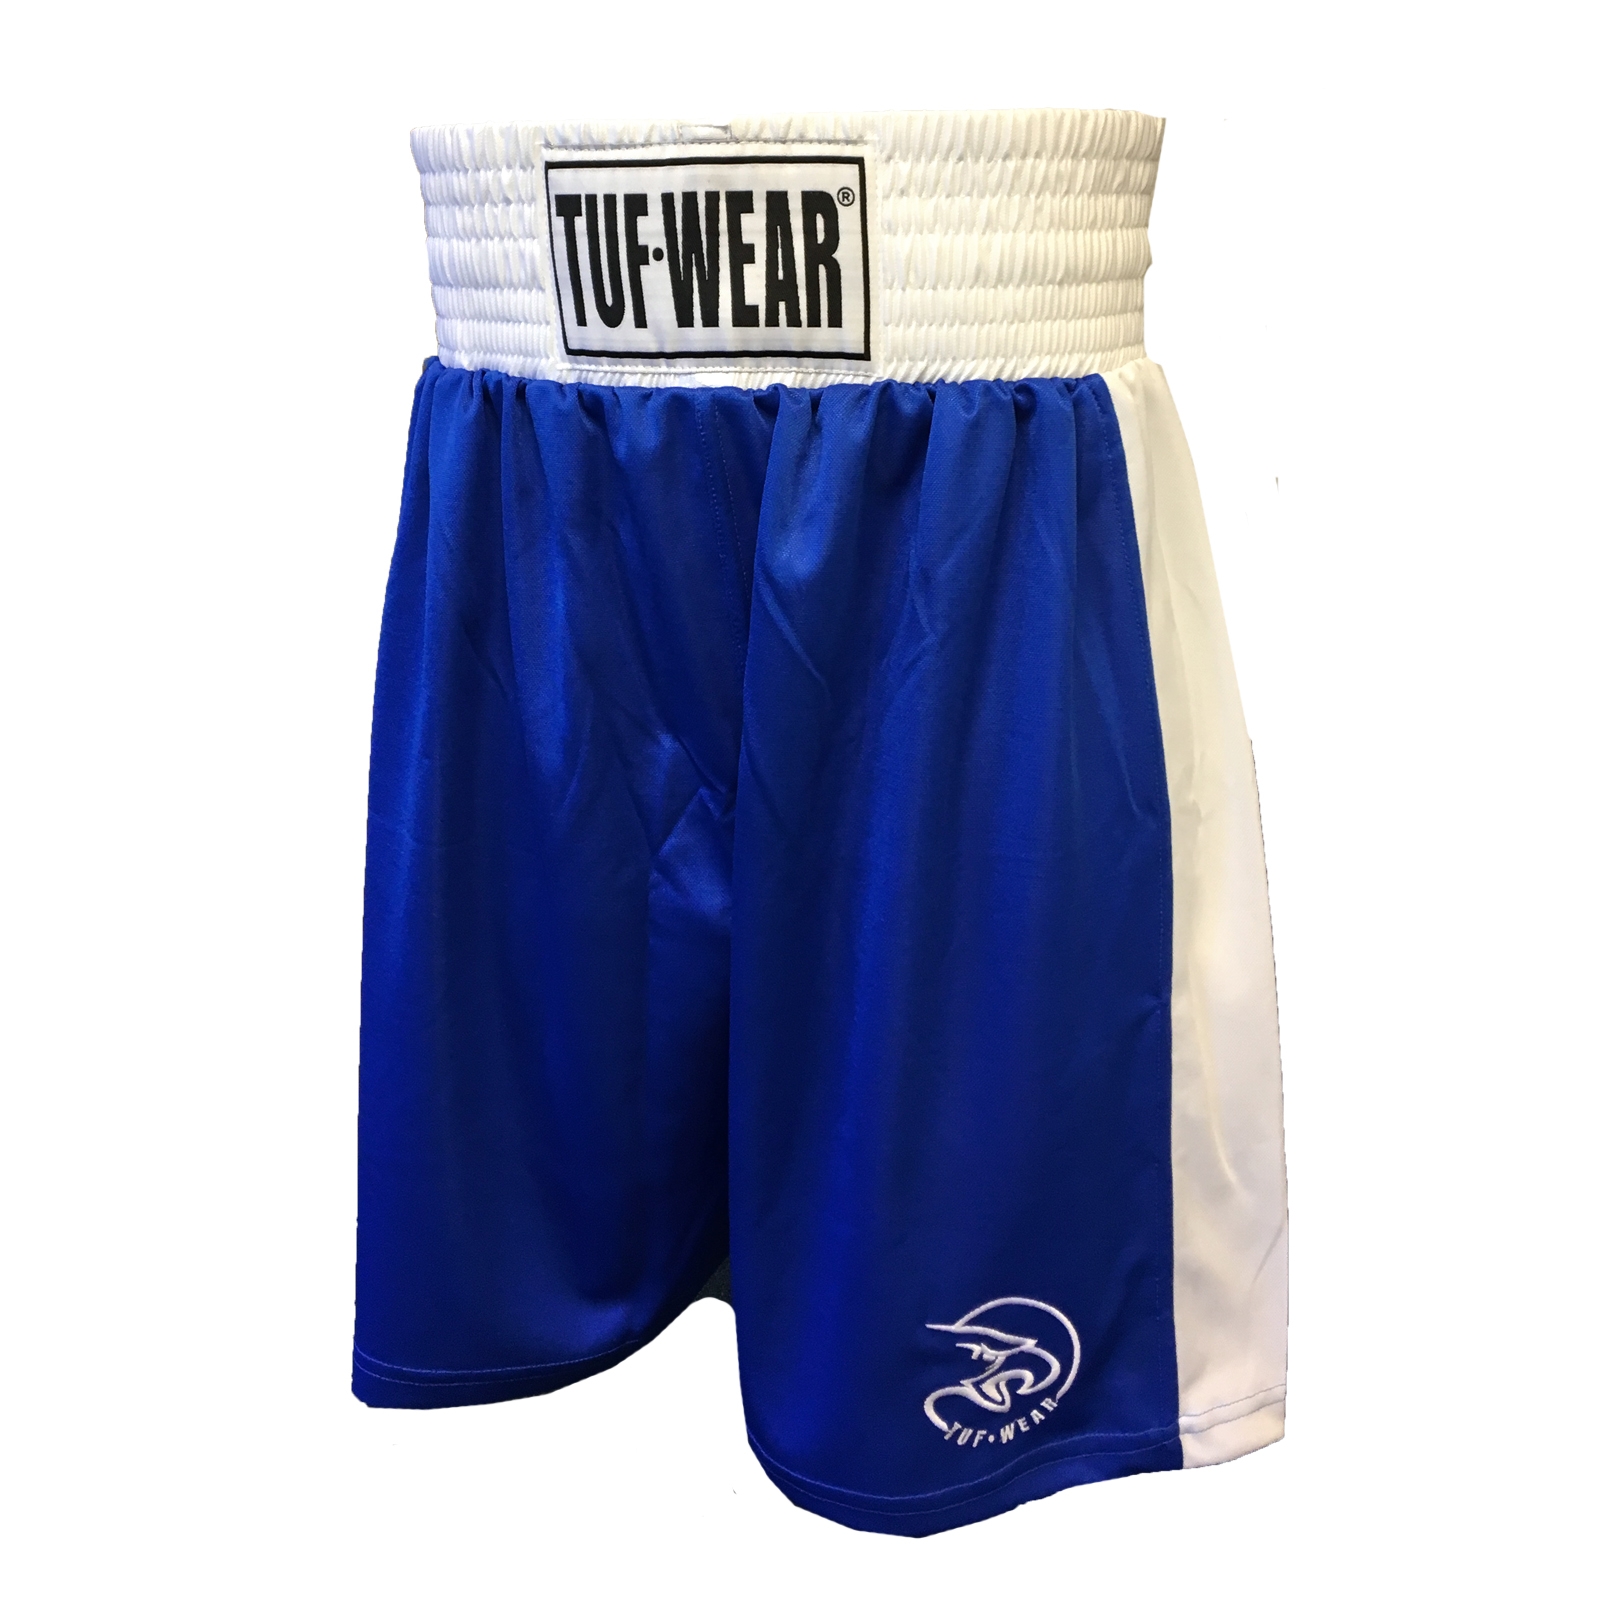 TUF WEAR SPIT FIRE PRO BOXING SHORTS